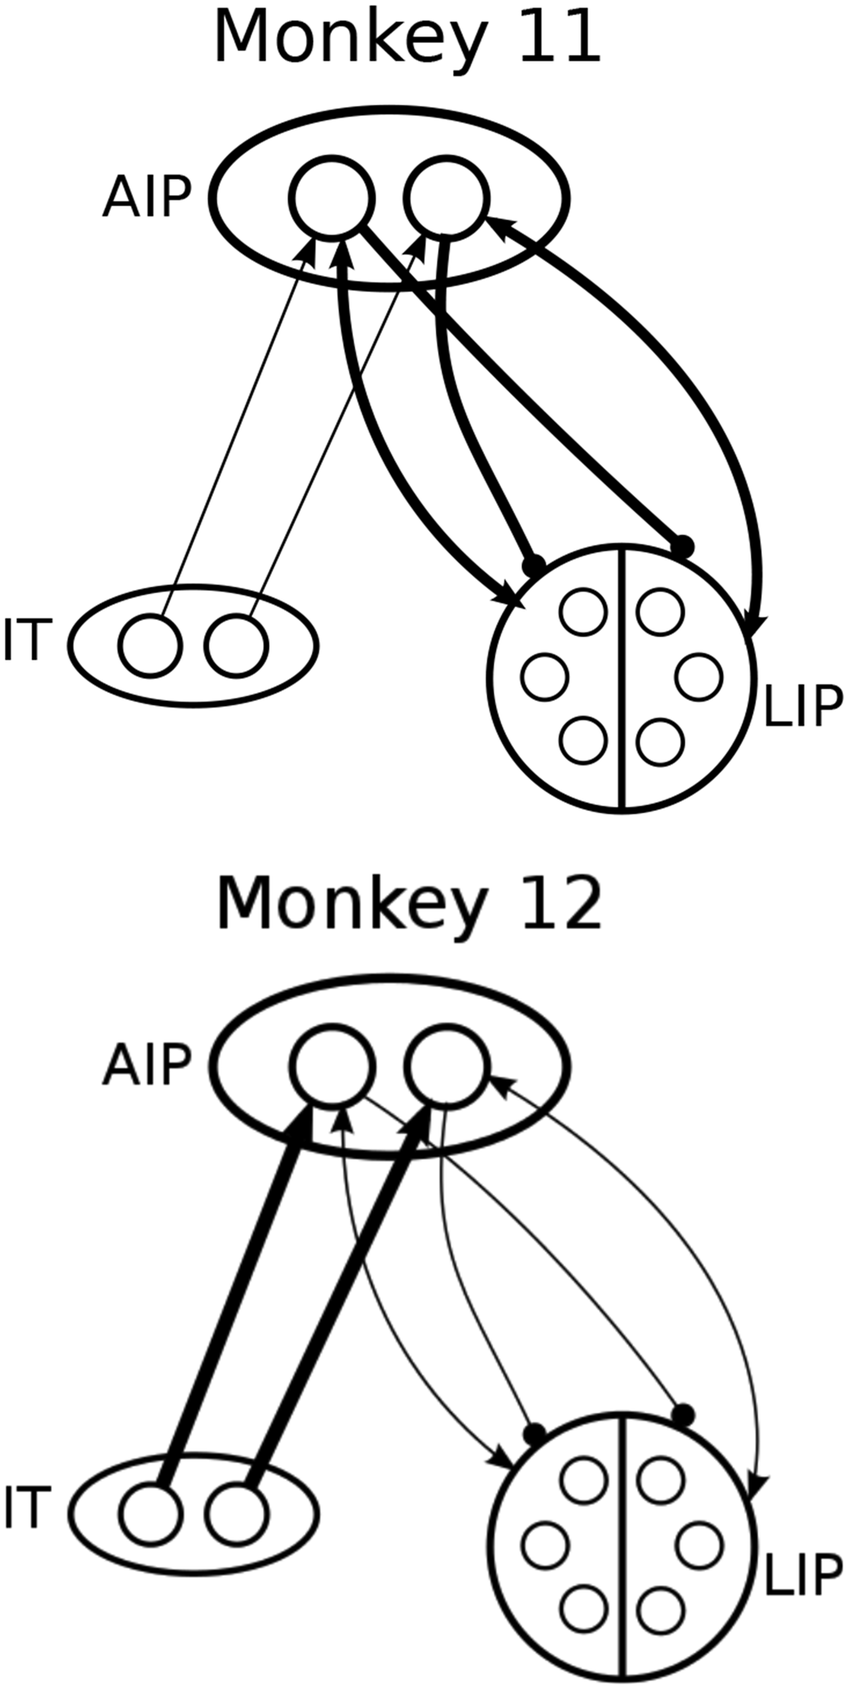 850x1690 Network Cartoon Illustrating Fitted Connection Weights Among It